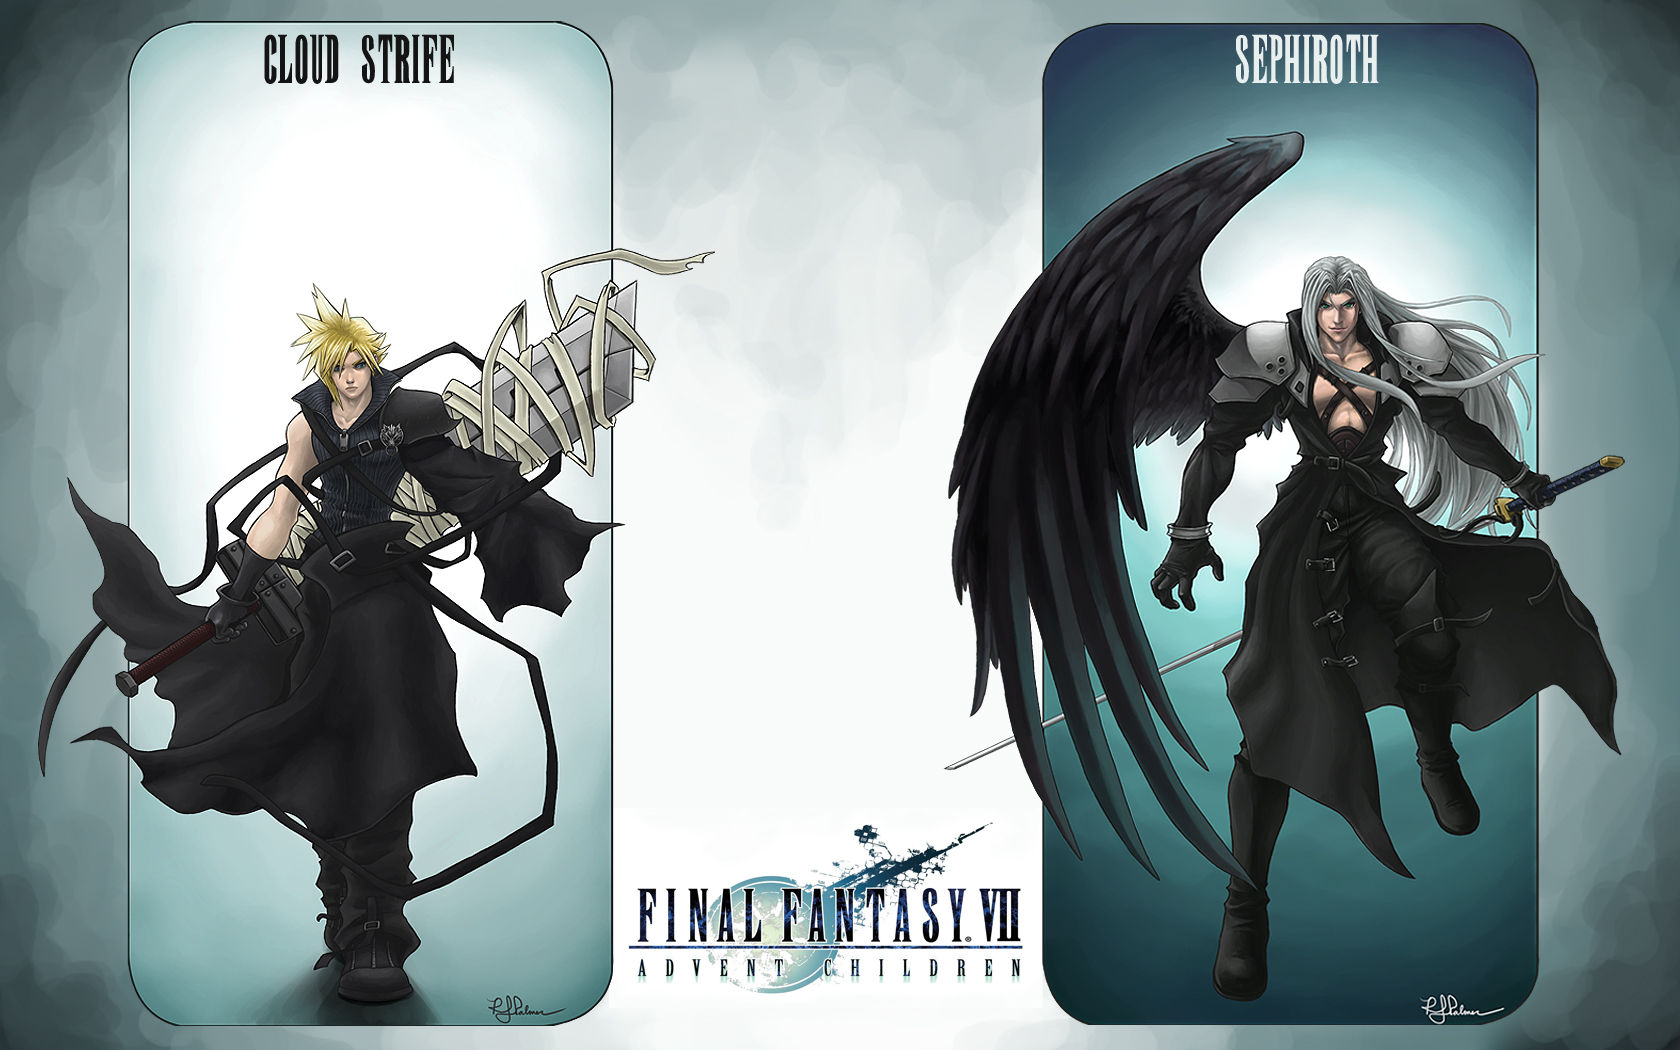 bandage blonde_hair boots cape cloud_strife final_fantasy final_fantasy_vii gloves gray_hair long_hair sephiroth short_hair sword weapon wings